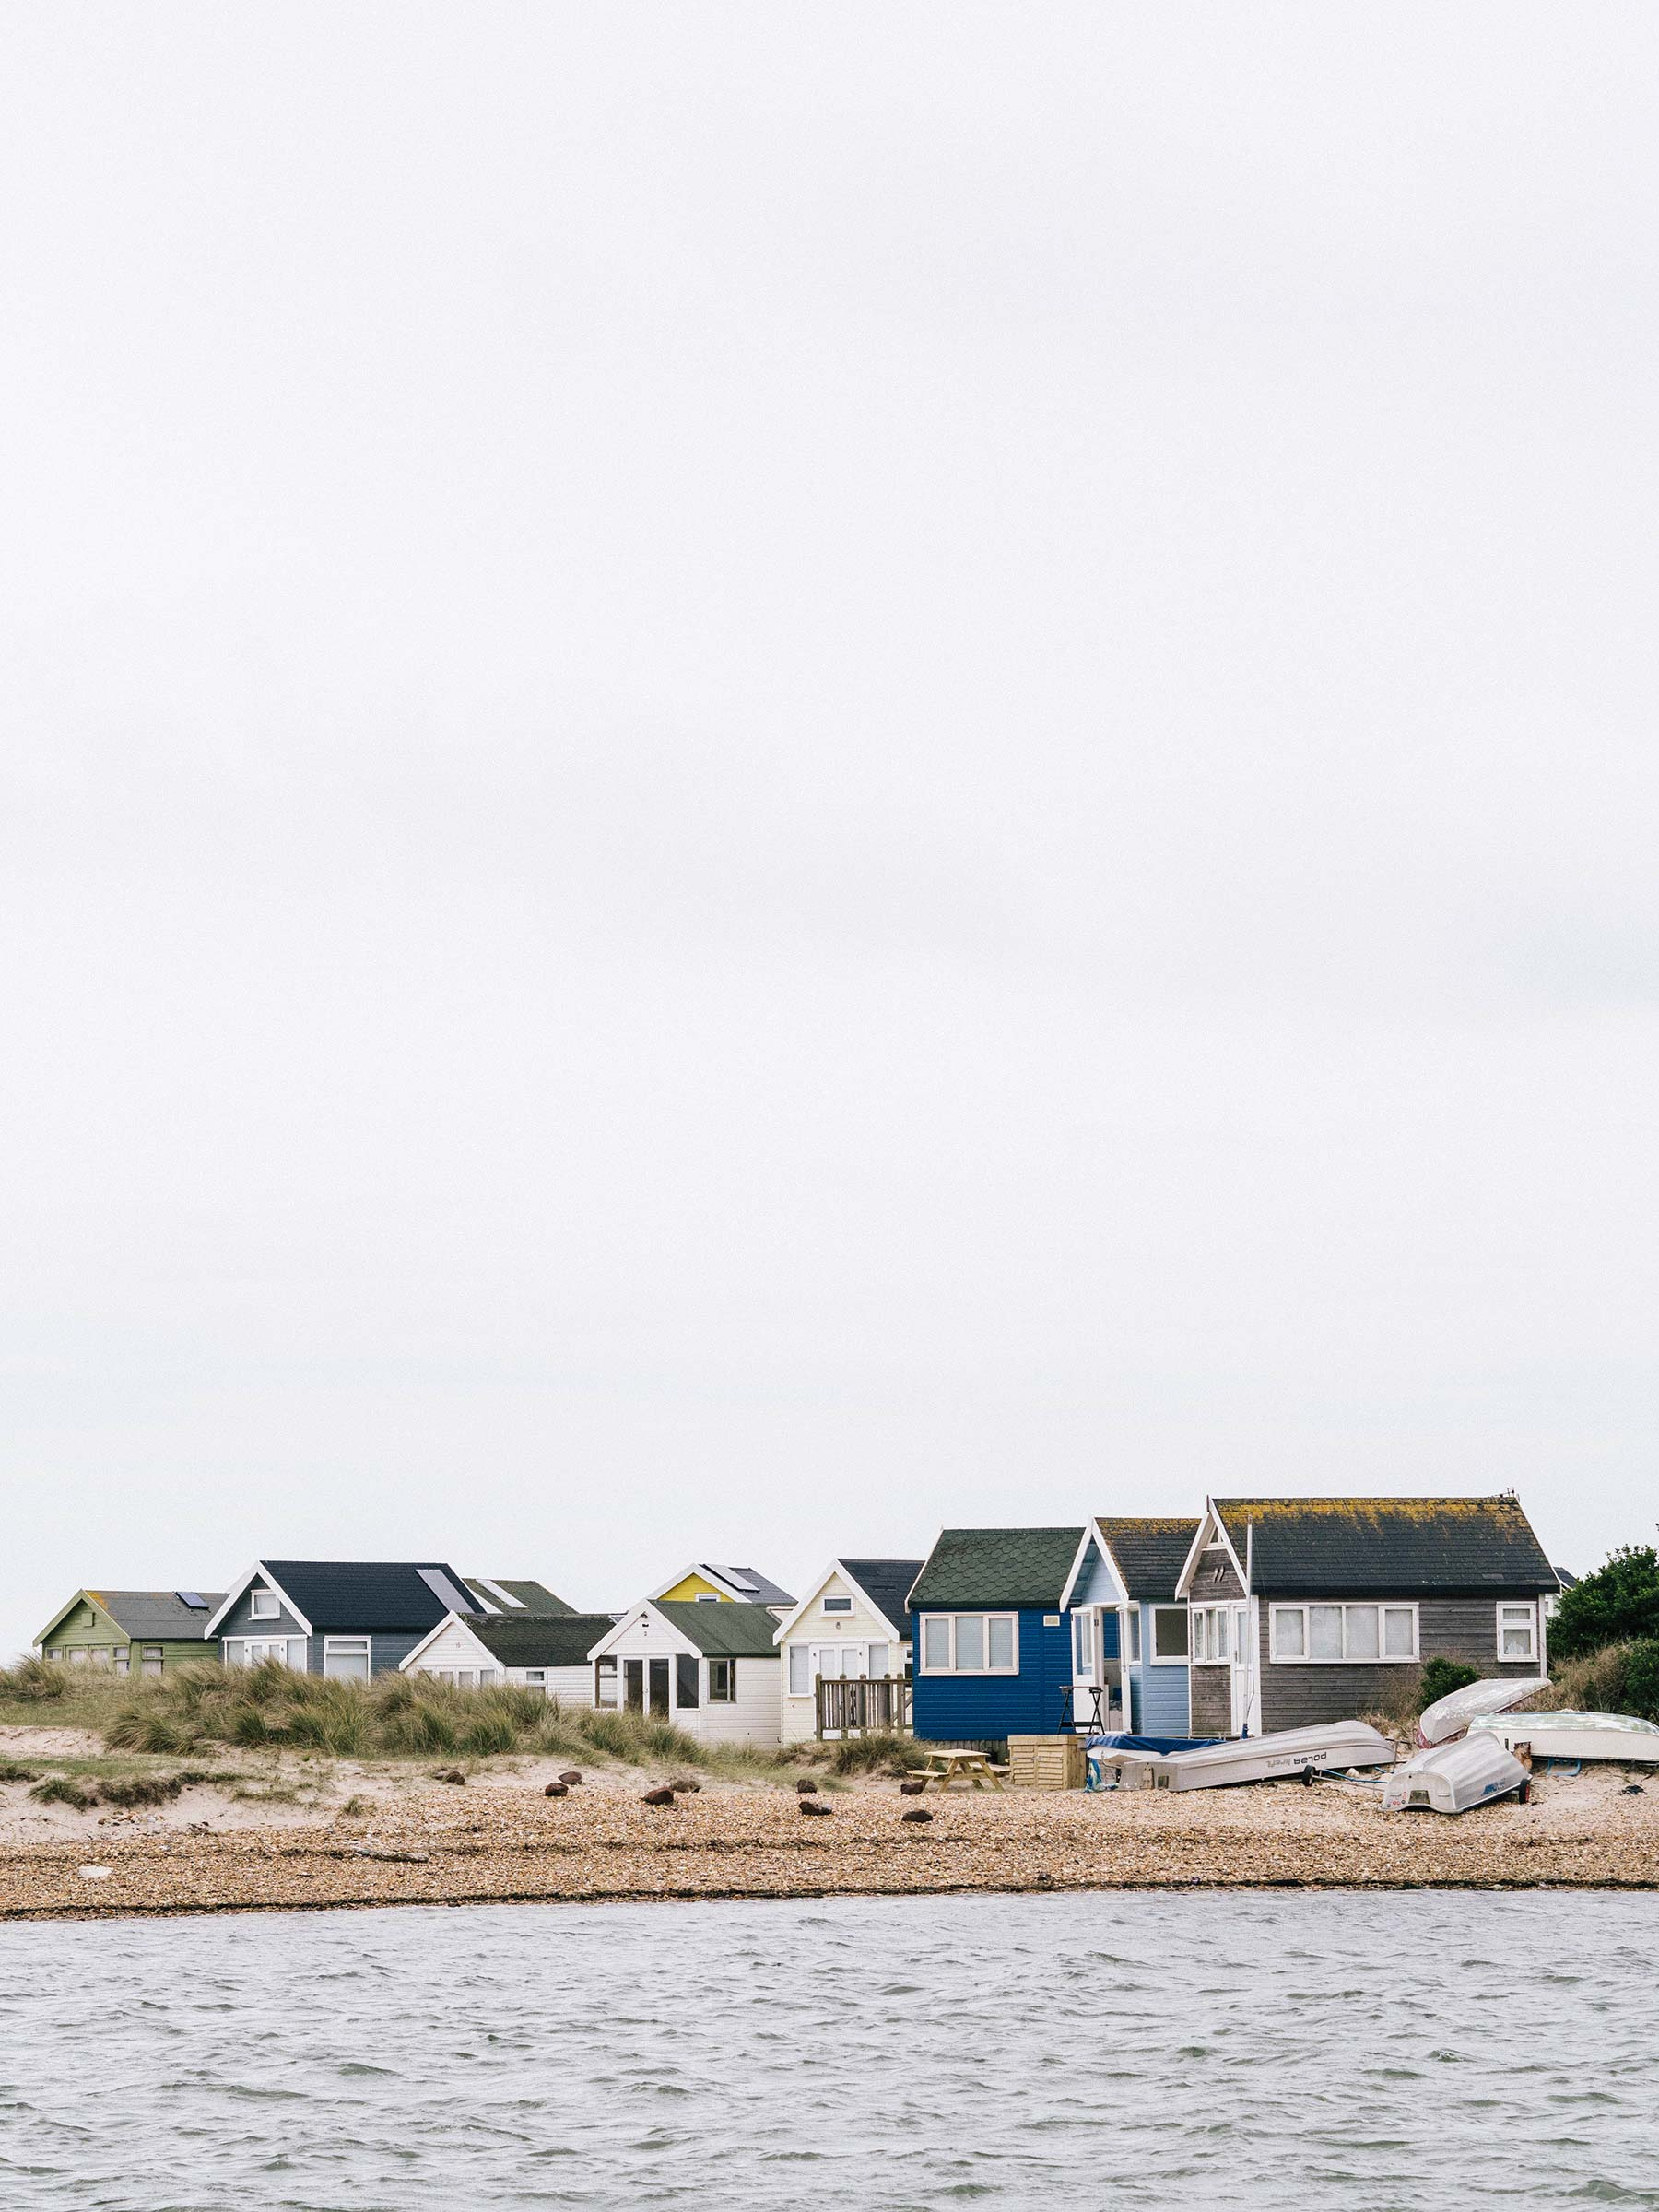 2-view-across-the-water-to-beach-huts.jpg